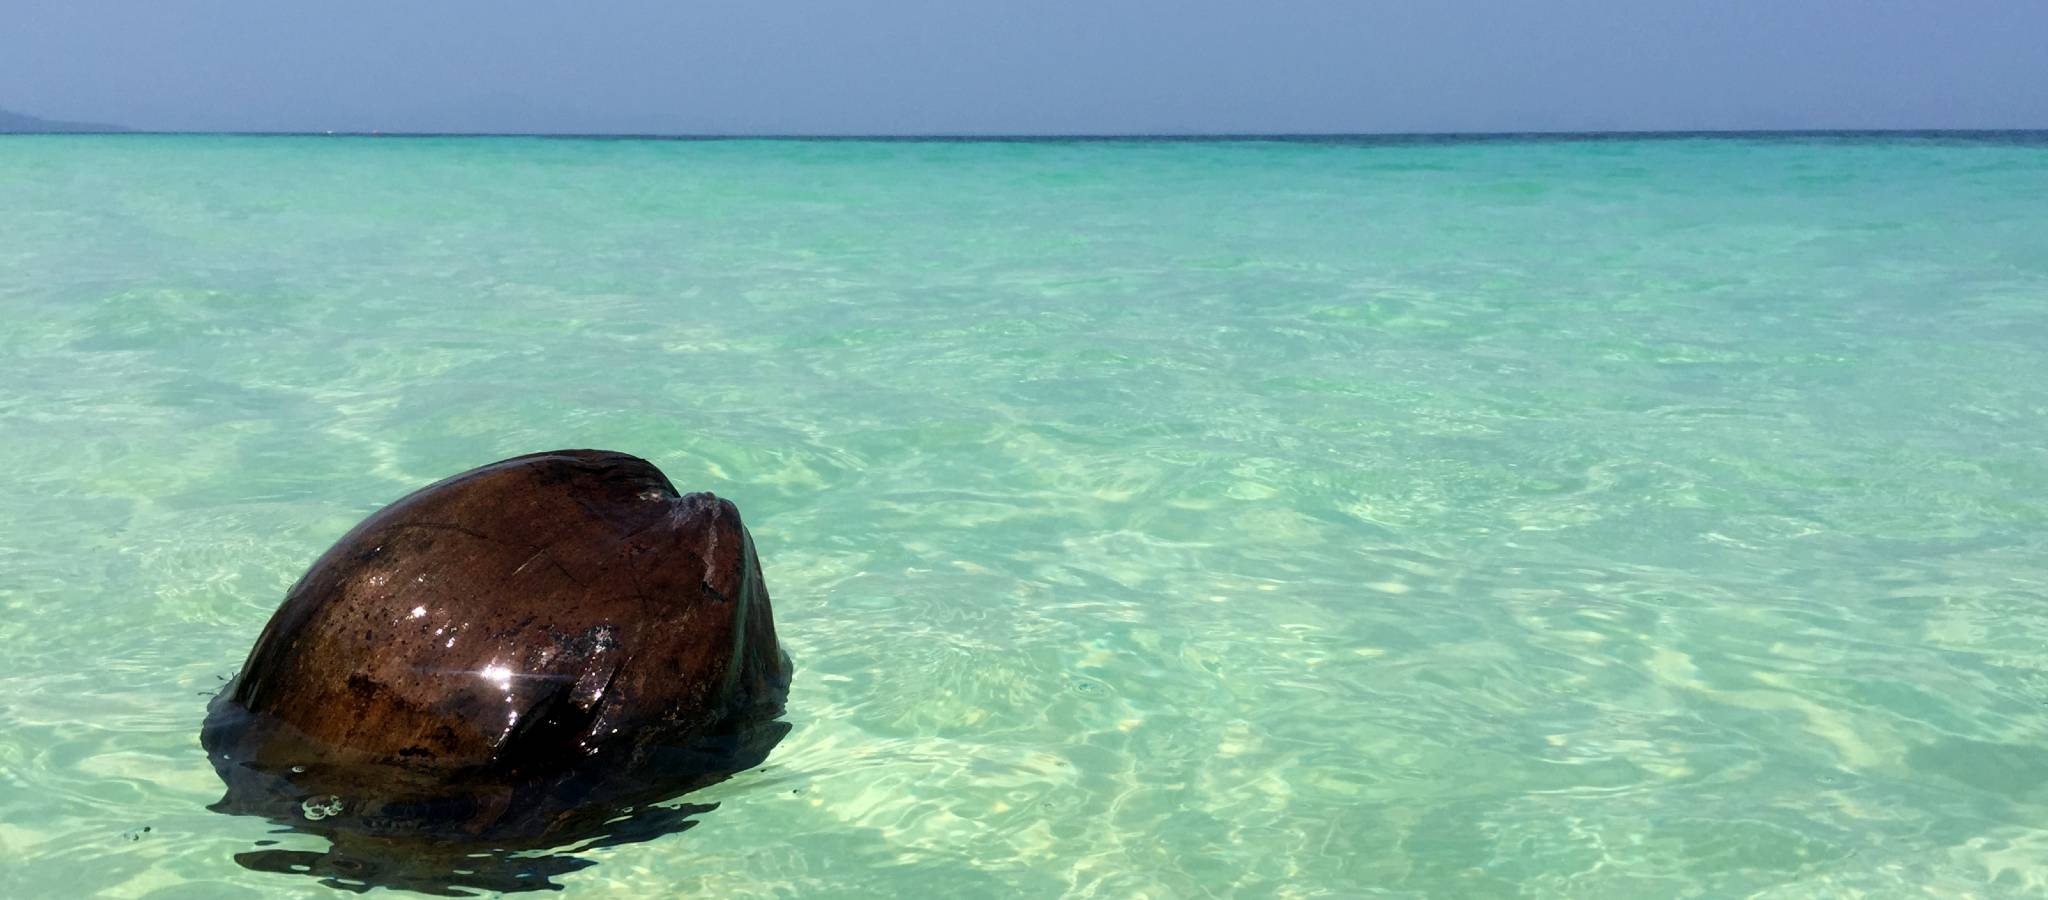 Floating coconut in the beautiful blue-green clear water of the sea of Koh Kradan